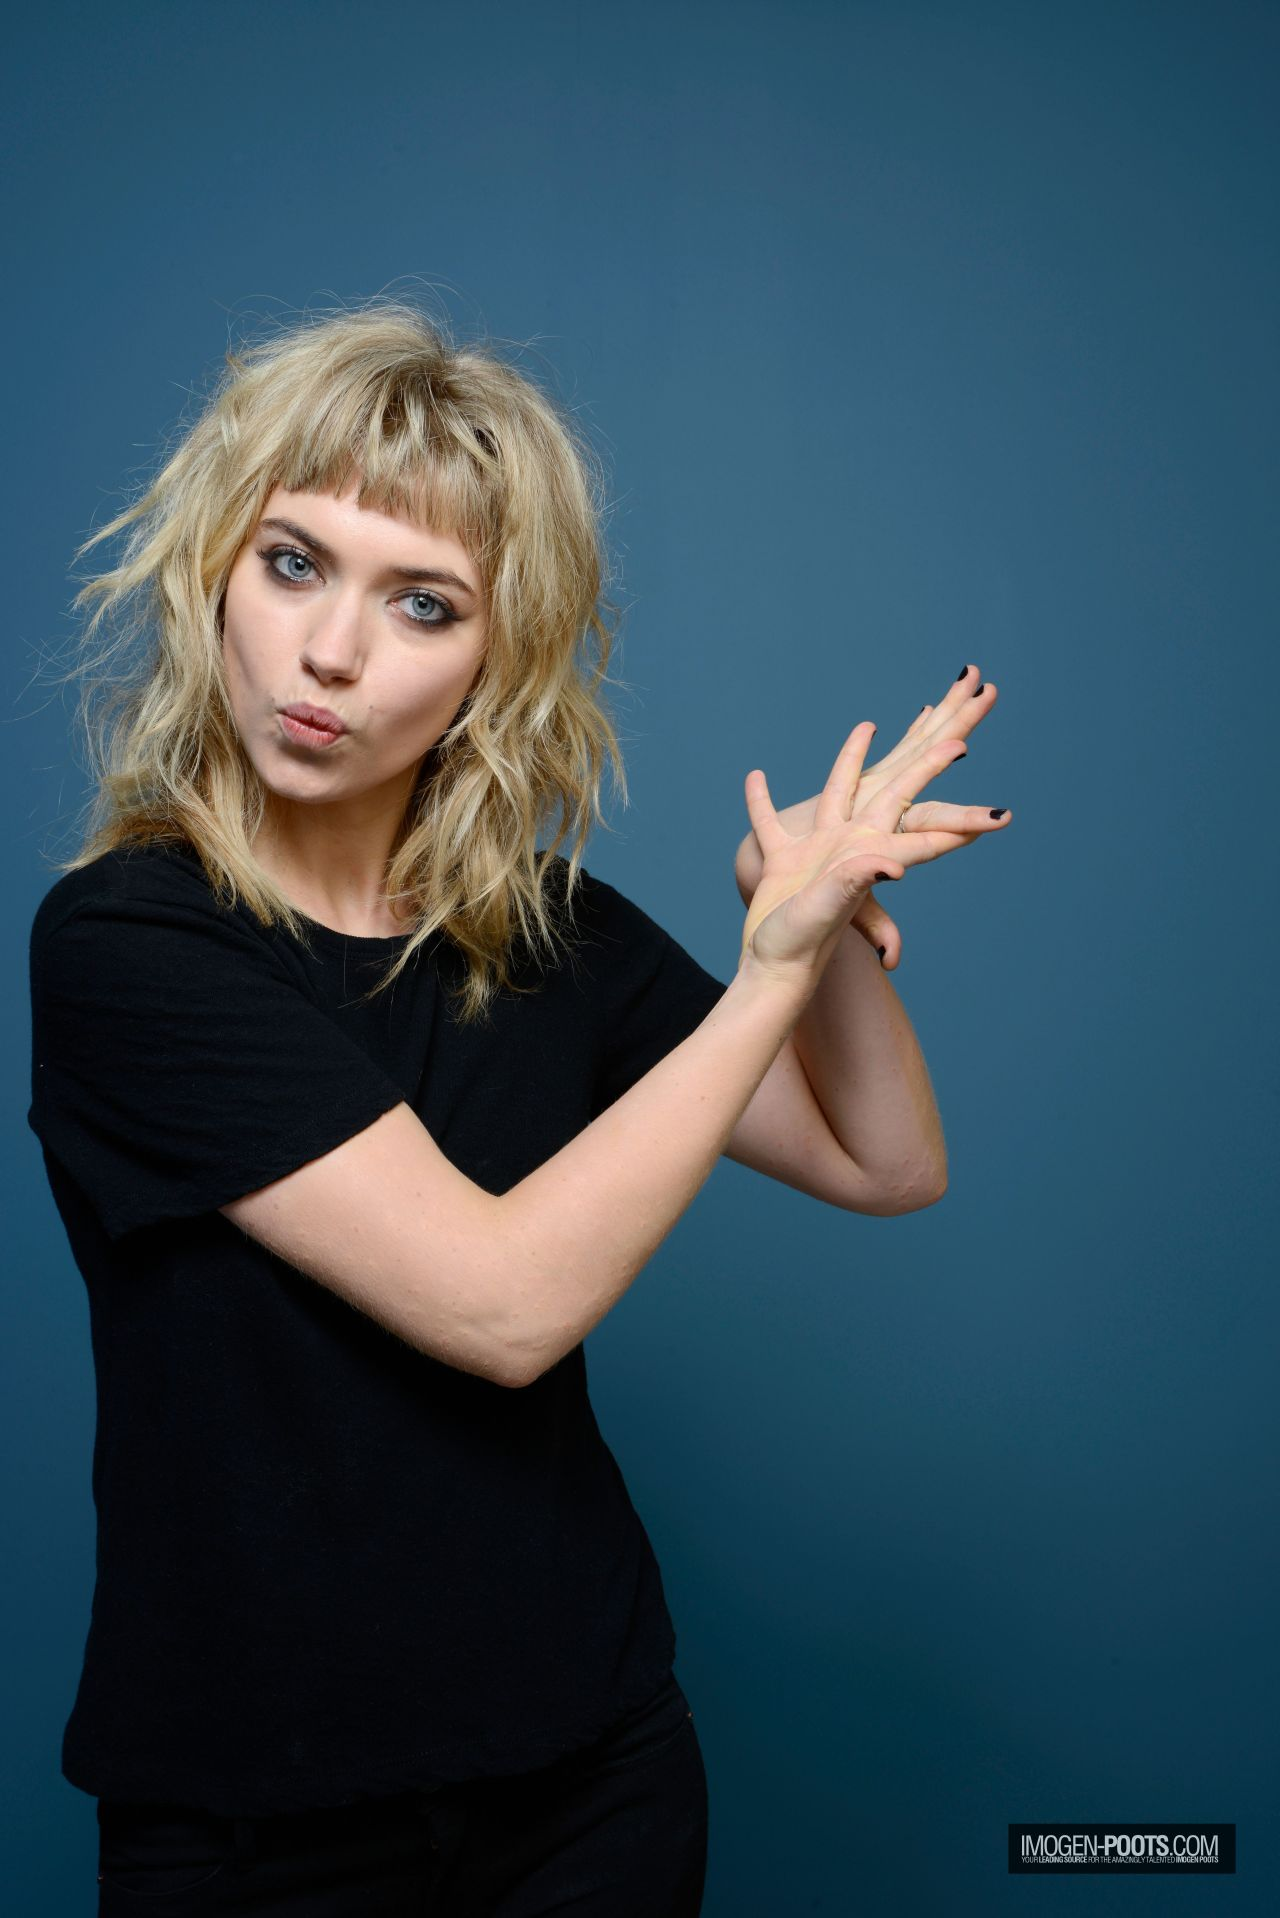 Imogen Poots All By My Side Portraits At TIFF 2013